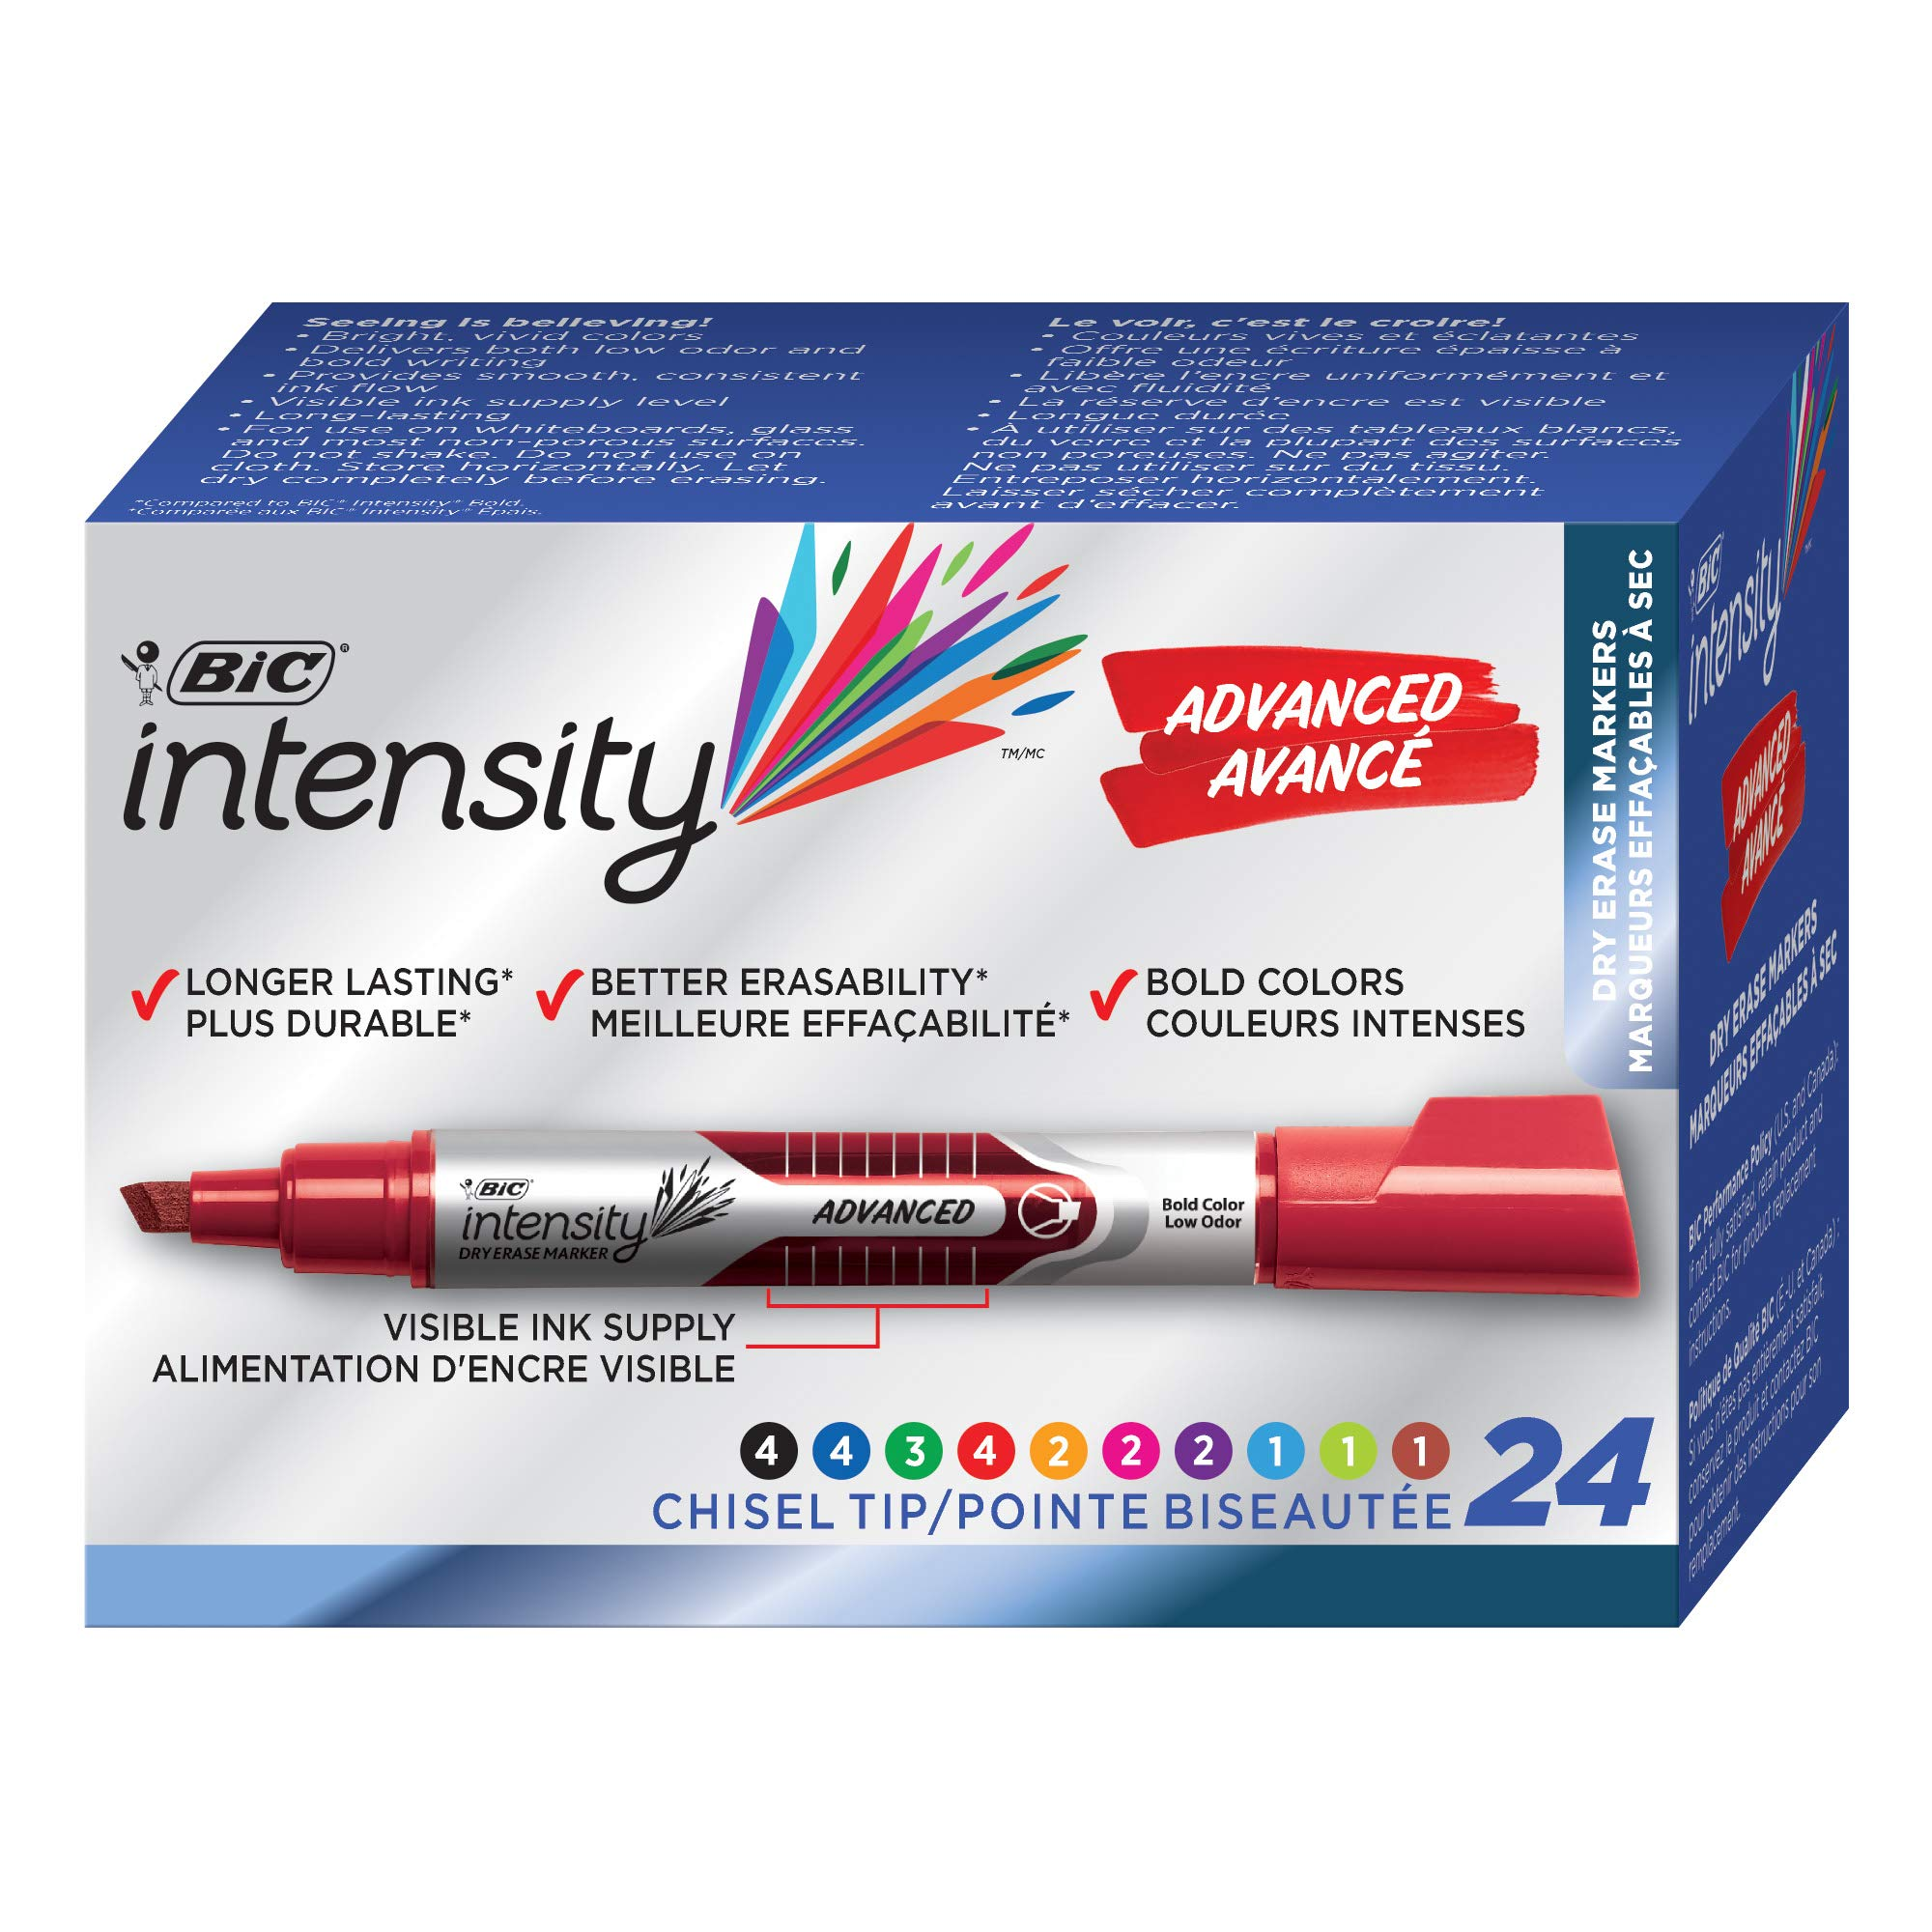 BIC Intensity Advanced Dry Erase Marker, Tank Style, Chisel Tip, Assorted Colors, 24-Count